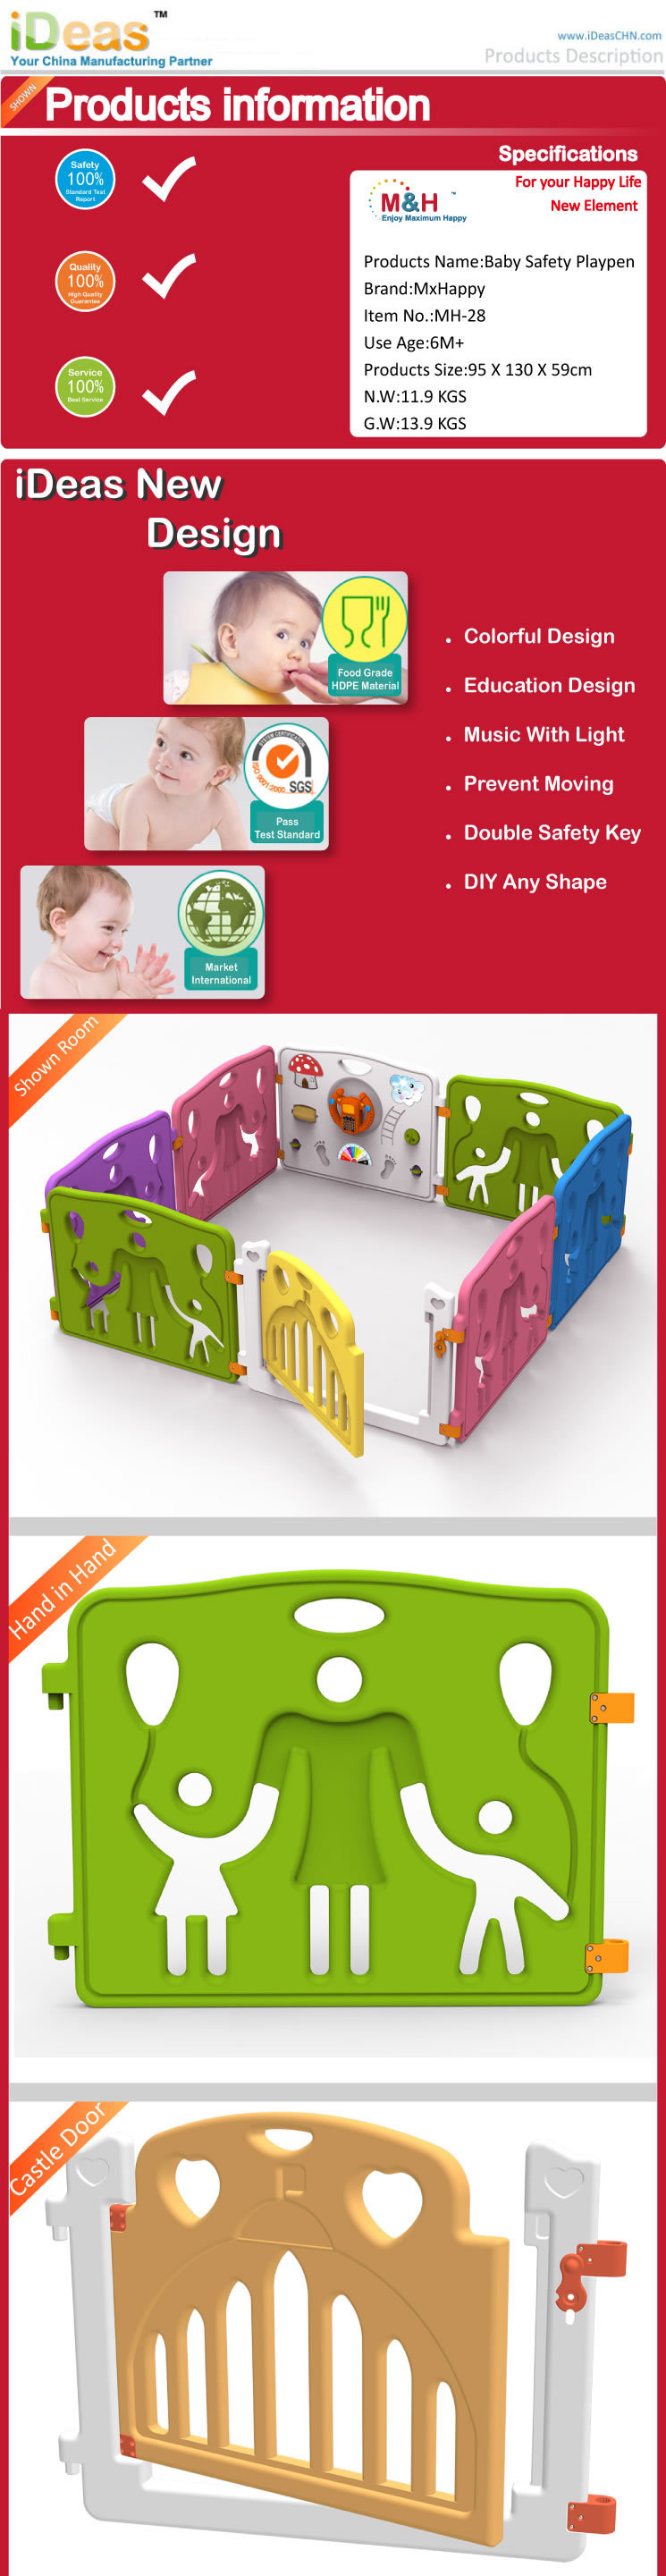 MH21-6+2  Baby Playpen Baby Safety Playpen Play Yard Fence  Kids 8 Panel Activity Safety Play Center Yard Home Indoor